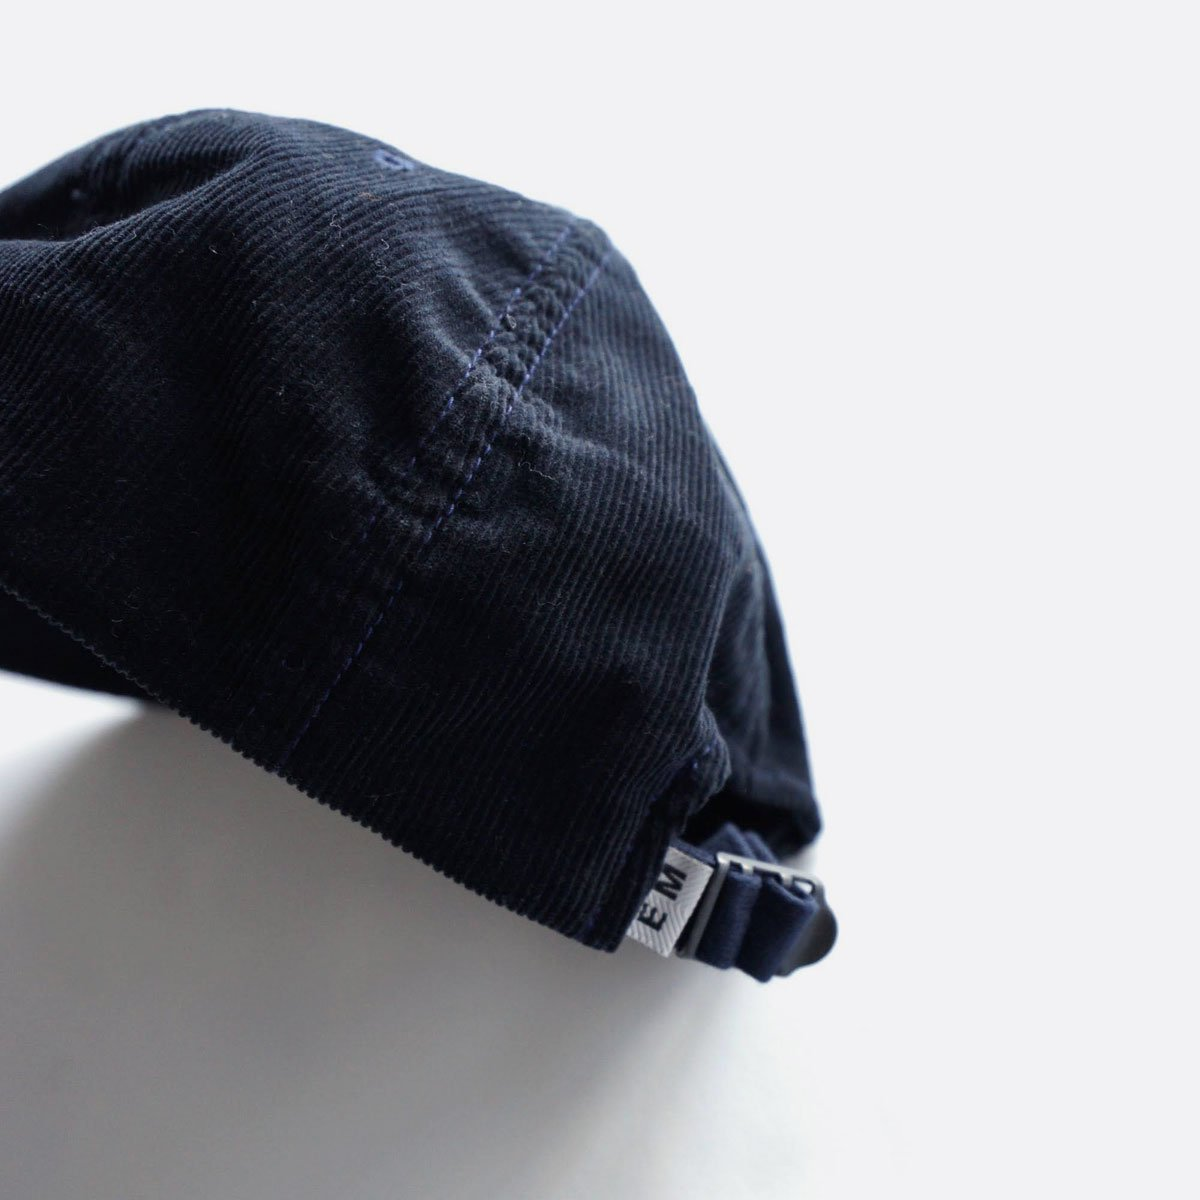 ENDS & MEANS  6PANEL CAP CORDUROY (NAVY)4